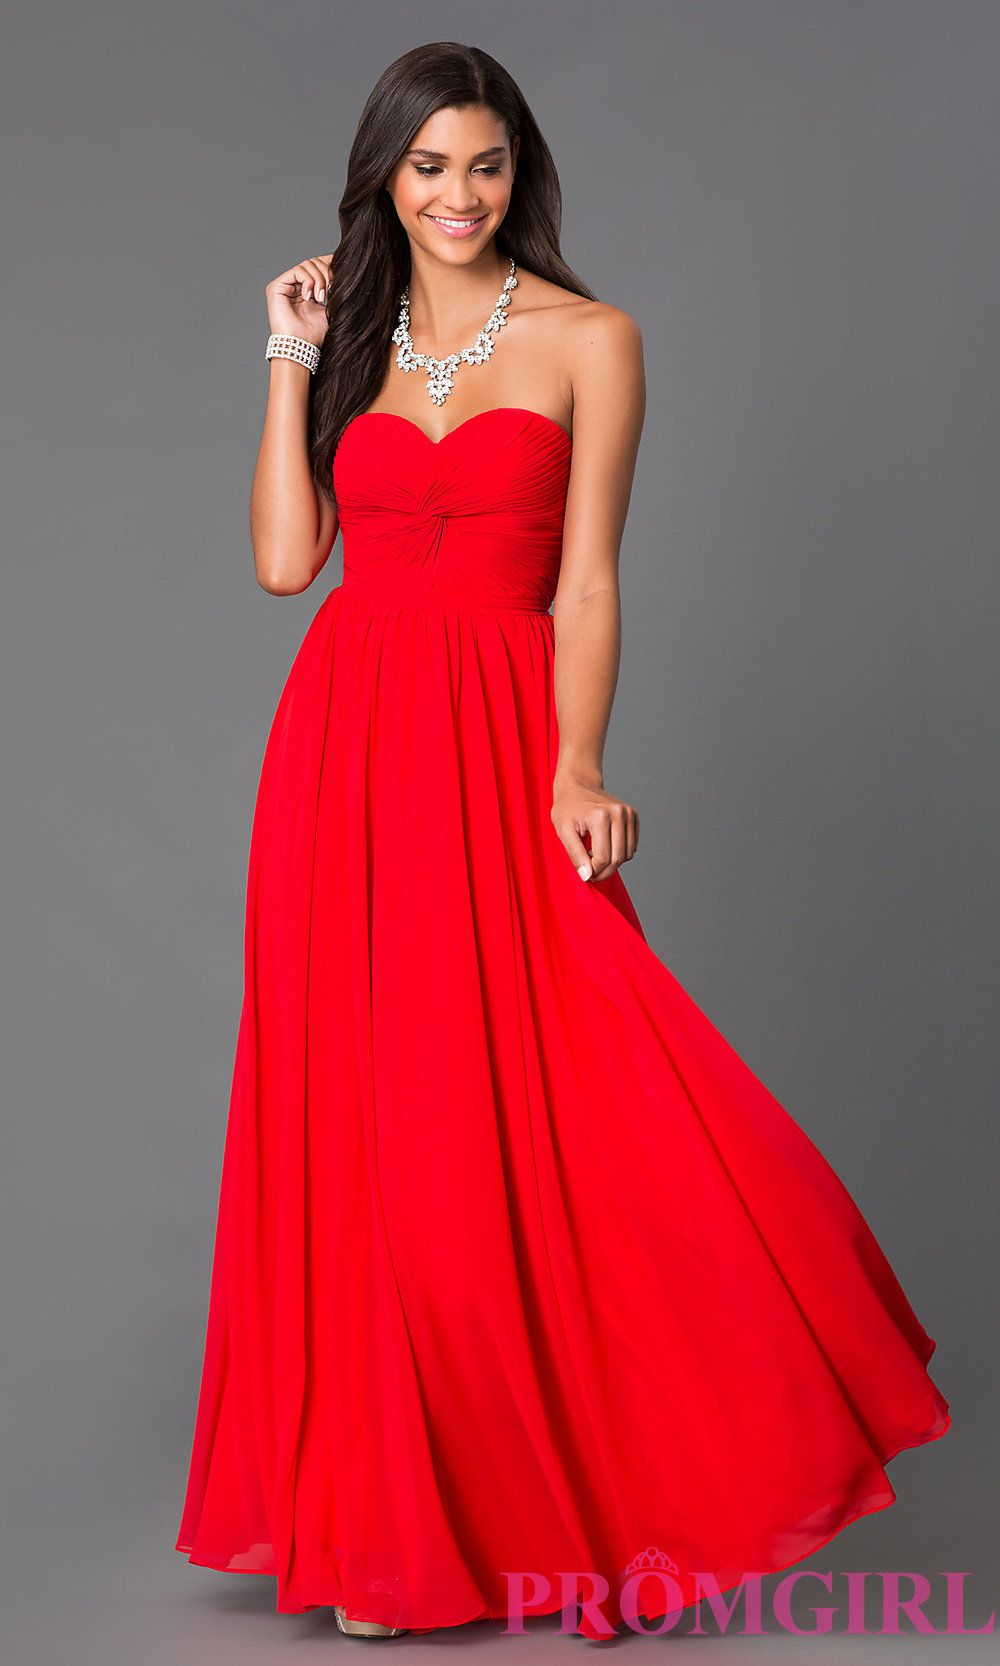 Strapless prom dress with lace up back weddings bridesmaids